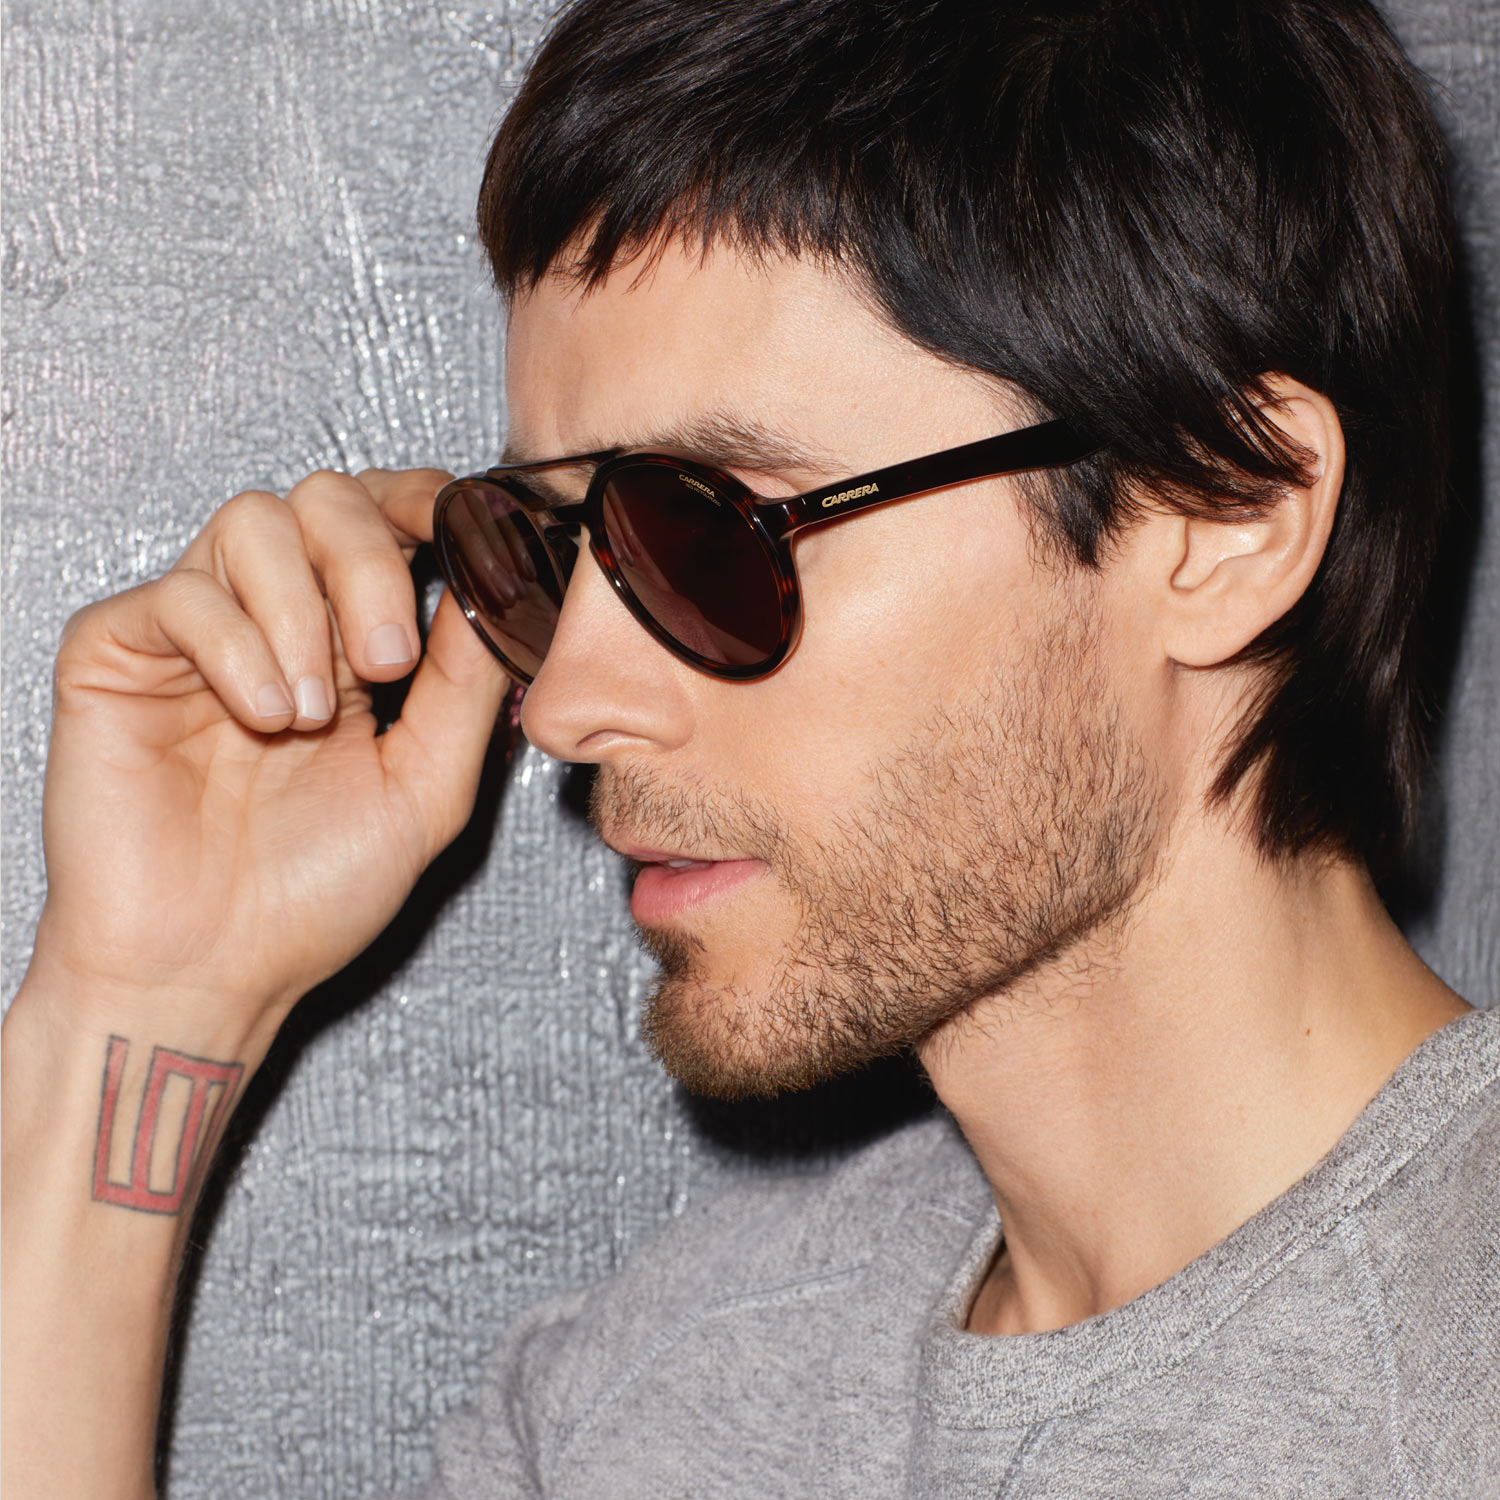 Jared Leto photo #770668